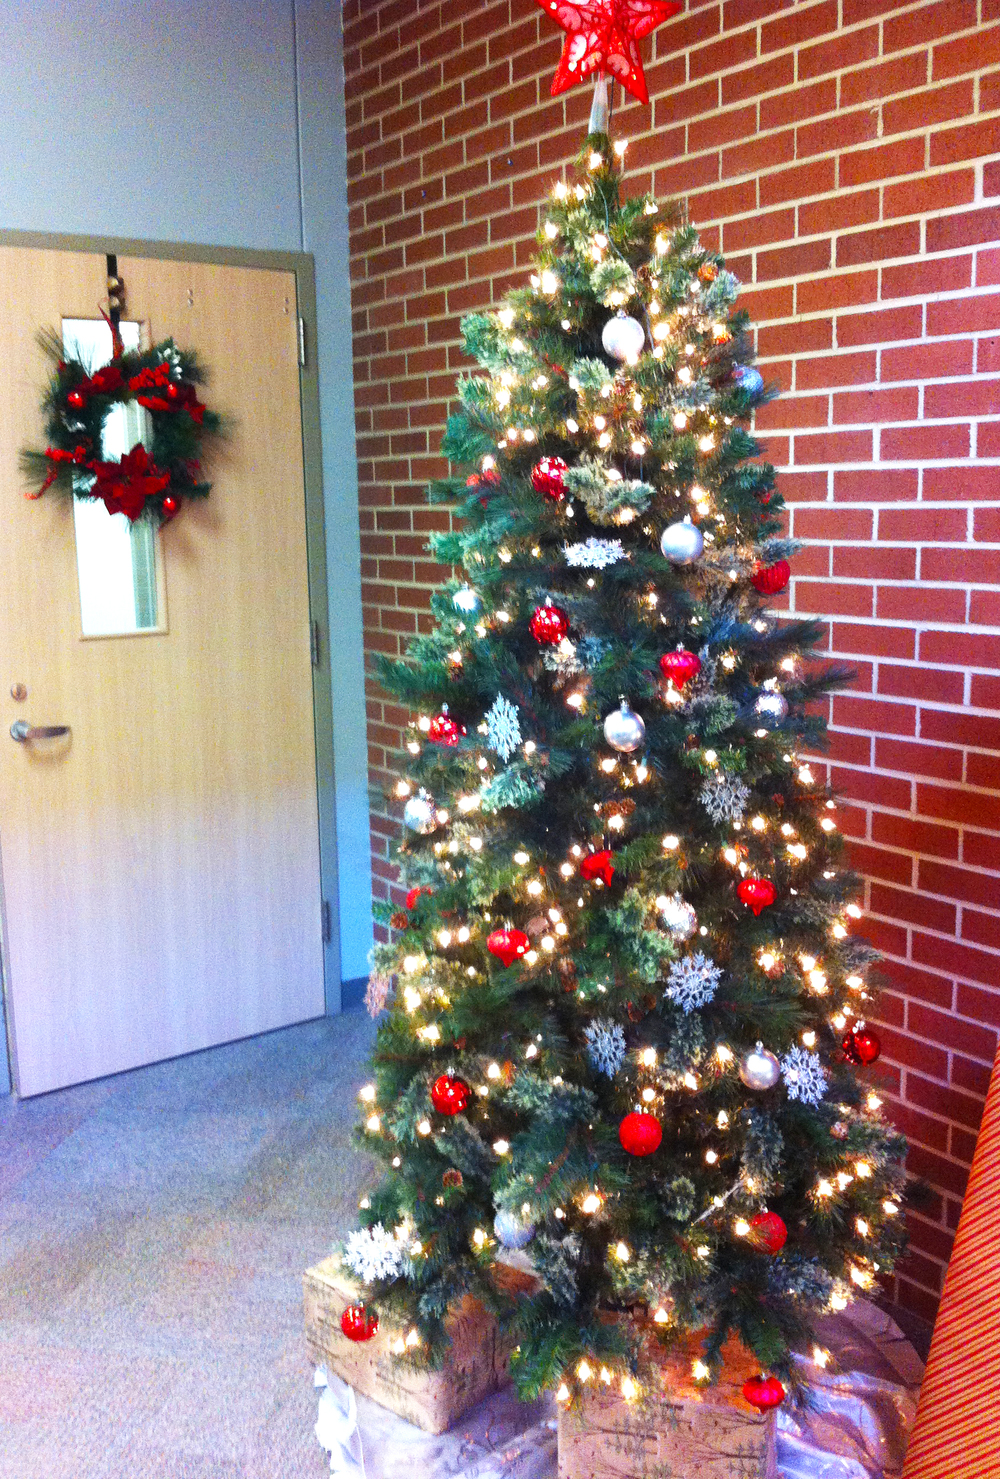 LHS Christmas Tree.jpg